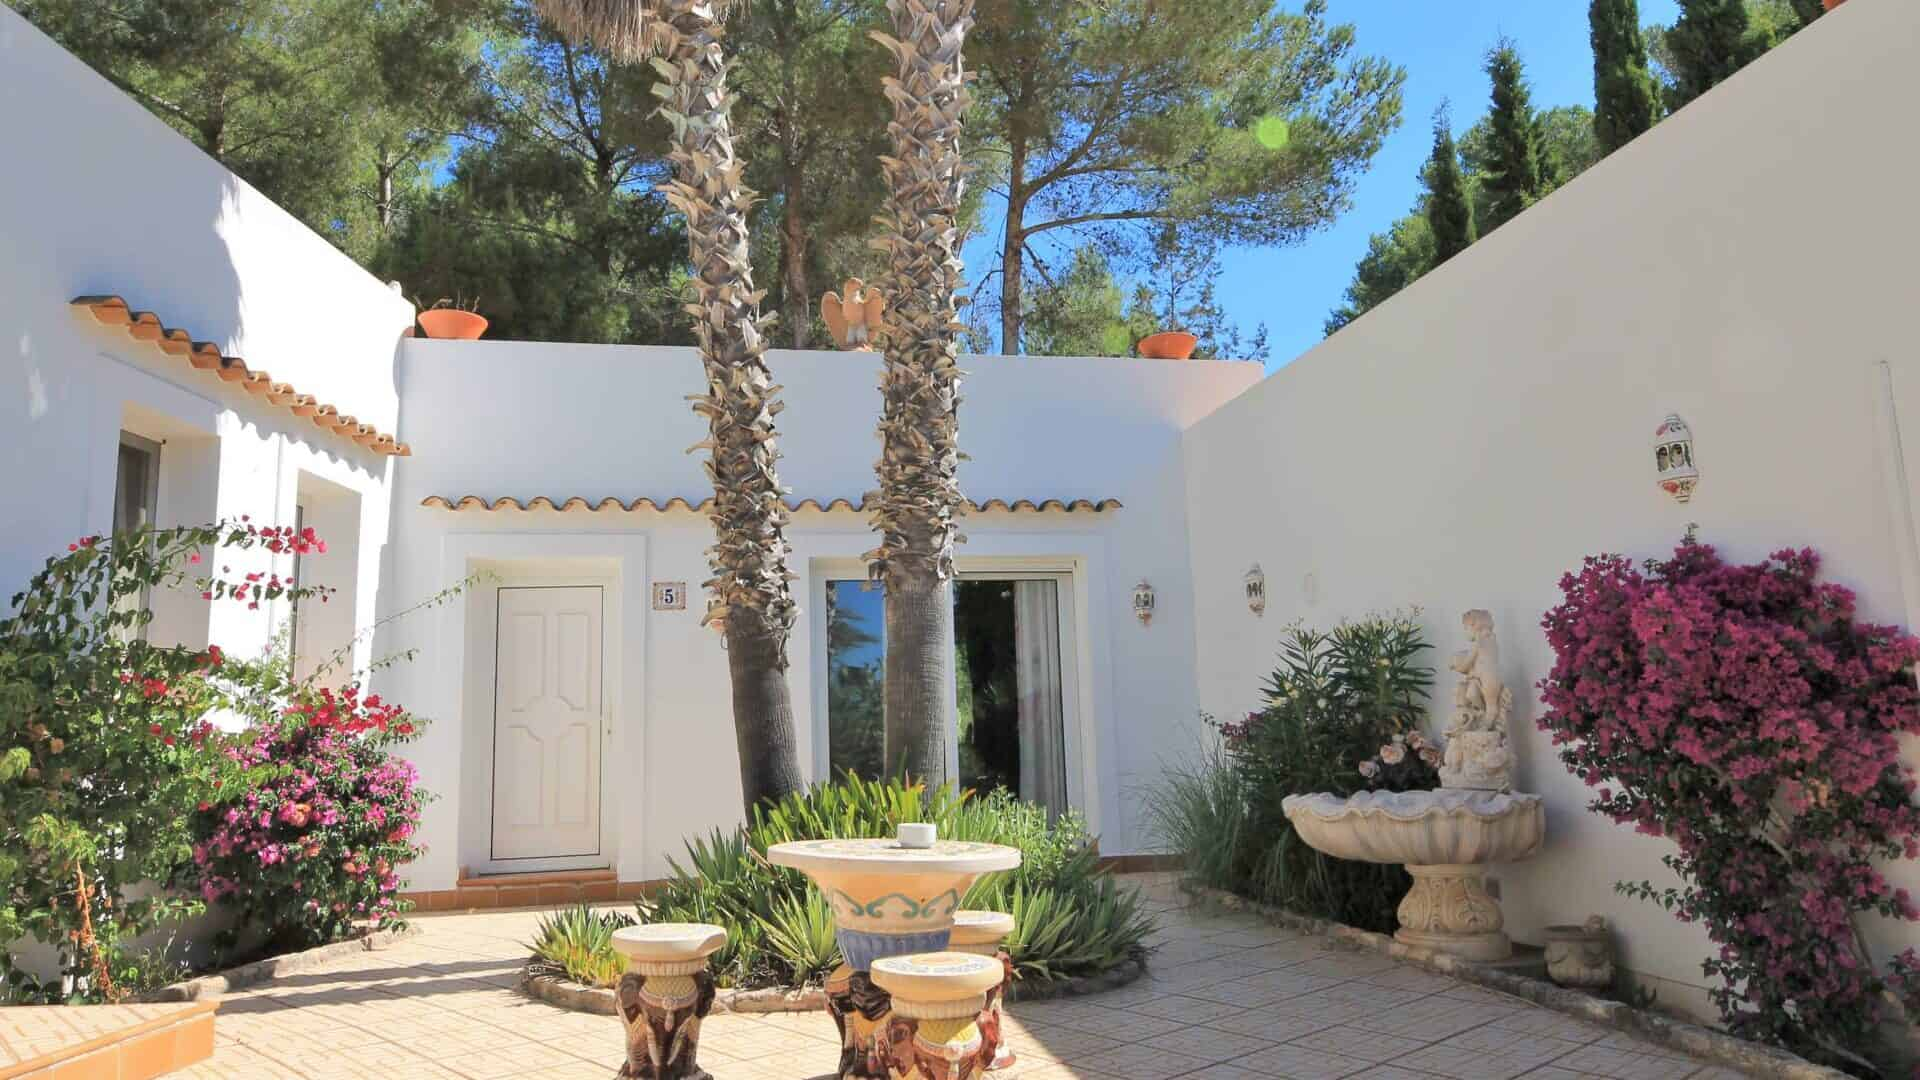 Large Family House for sale Ibiza 942 sqm 13 bedrooms